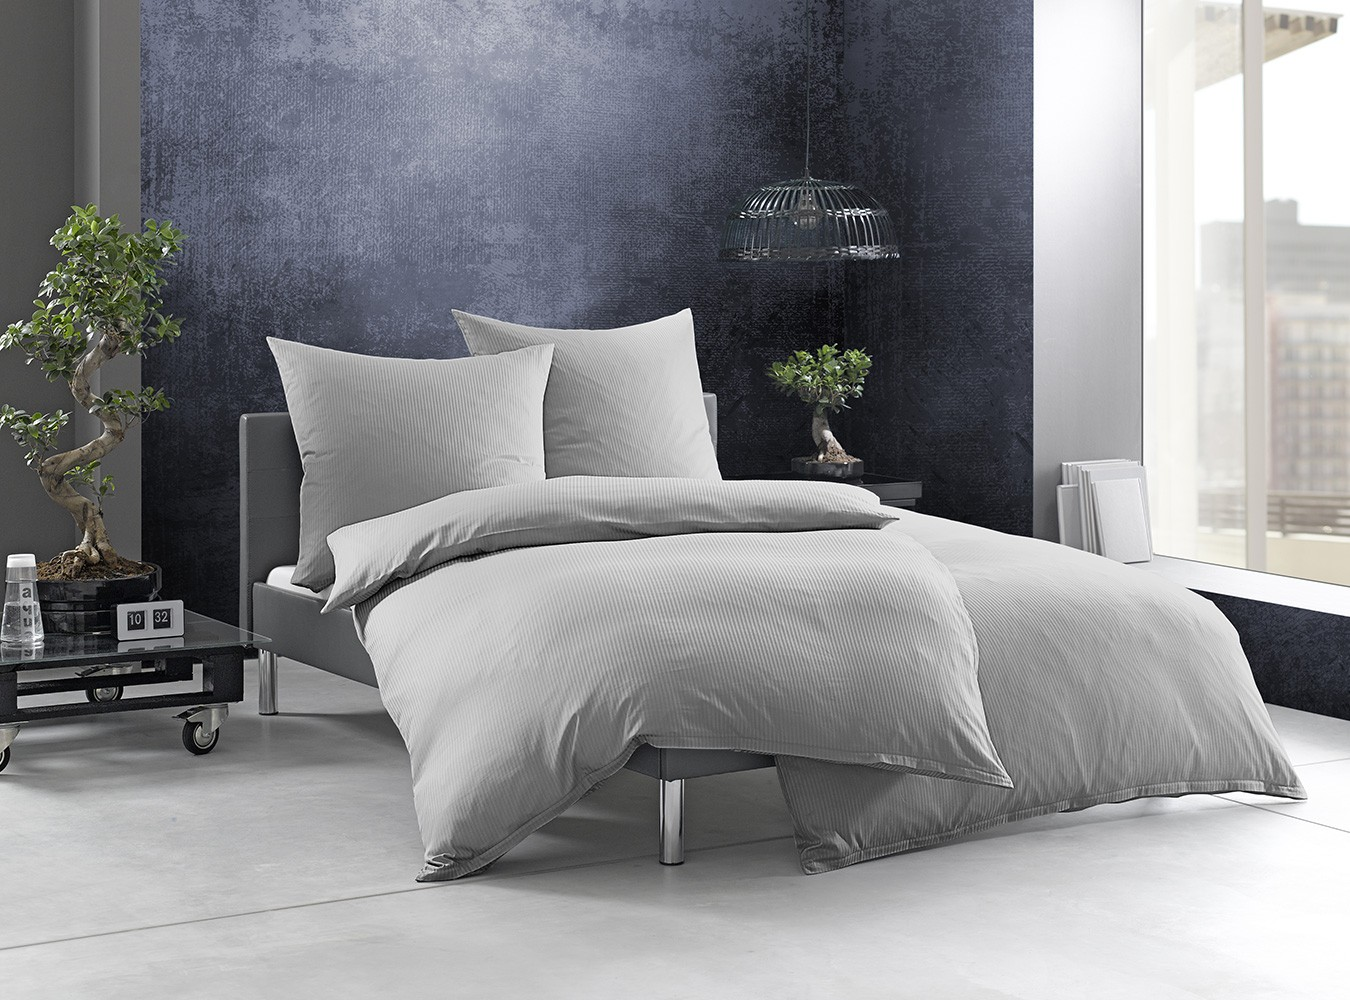 gestreifte bettw sche grau bettwaesche mit stil. Black Bedroom Furniture Sets. Home Design Ideas